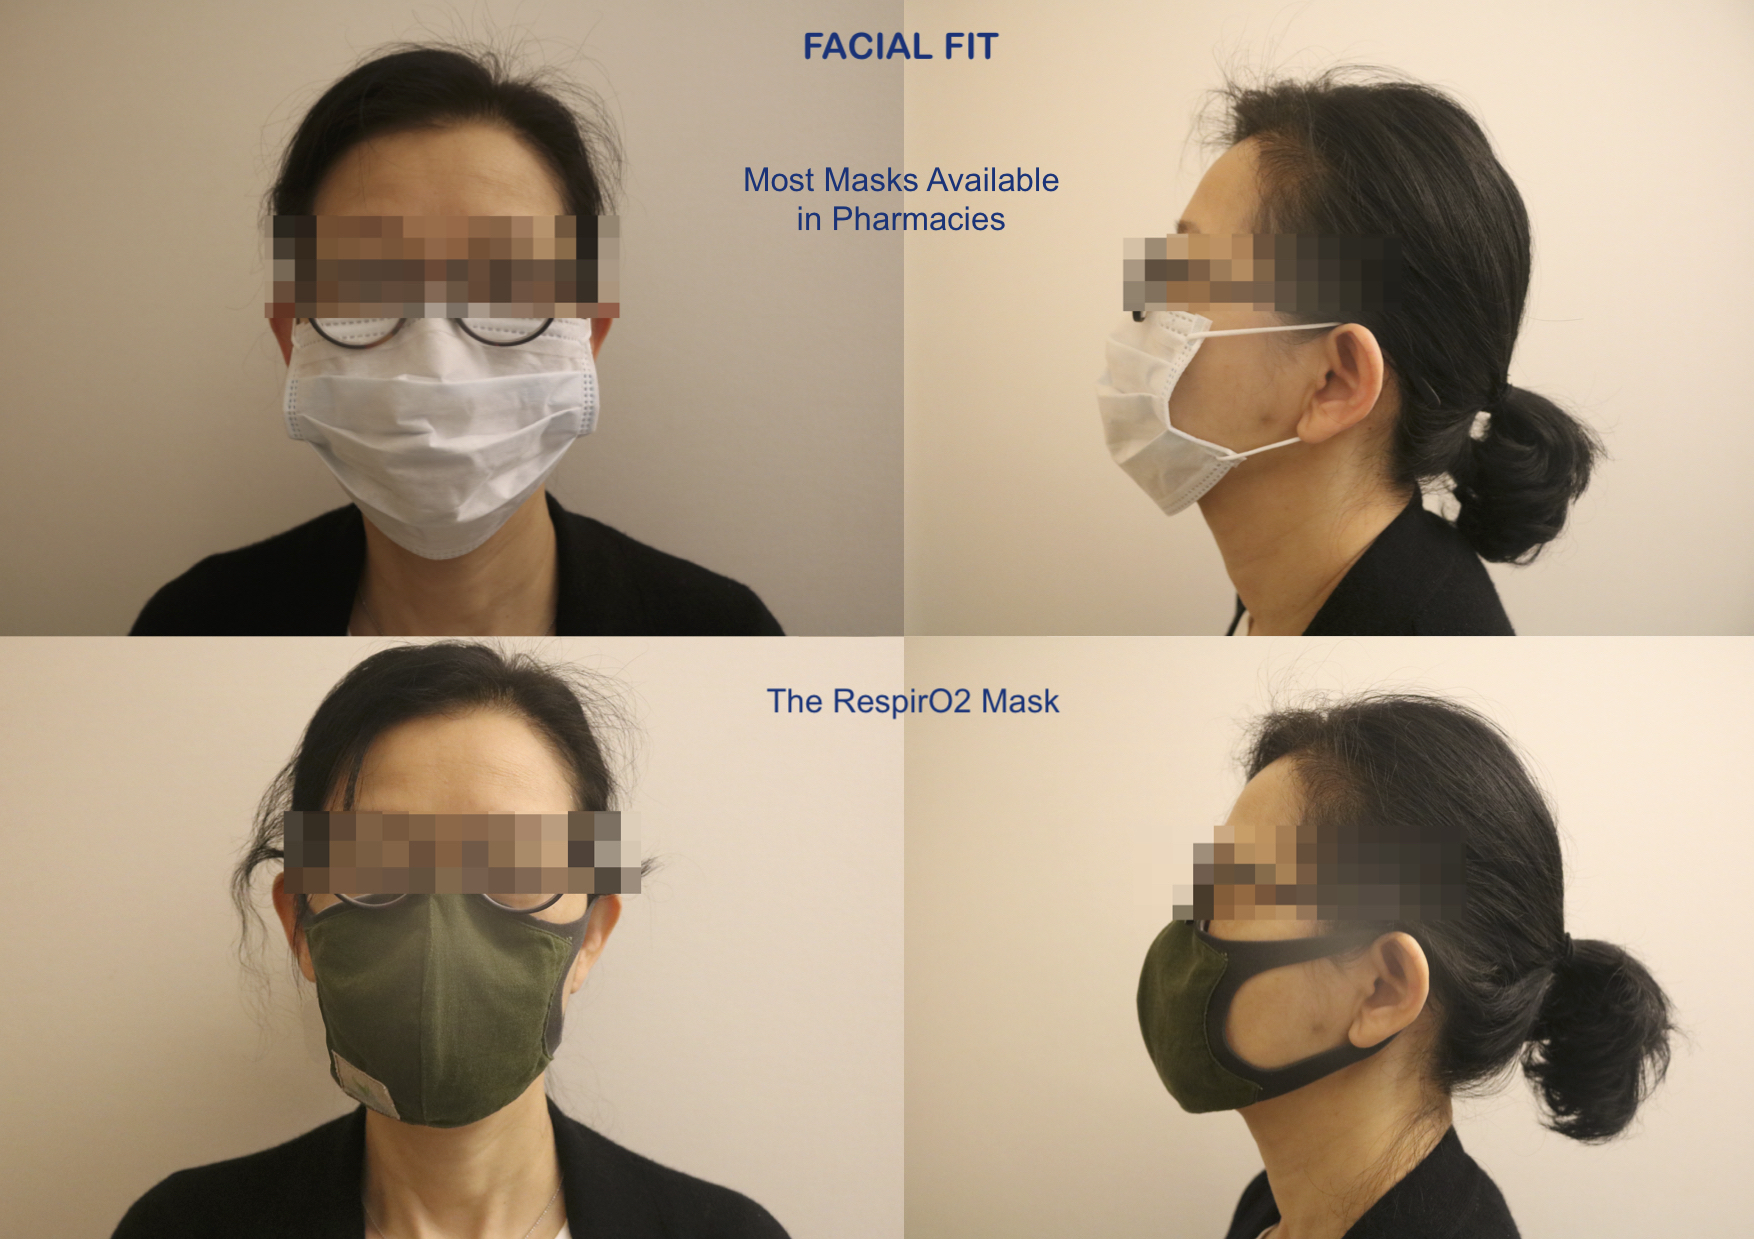 /srv/www/vhosts/user3101/html/entrepreneurship-campus.org/wp-content/uploads/2019/07/Facial-Fit-of-Most-Masks-vs-RespirO2-Mask-2.jpg